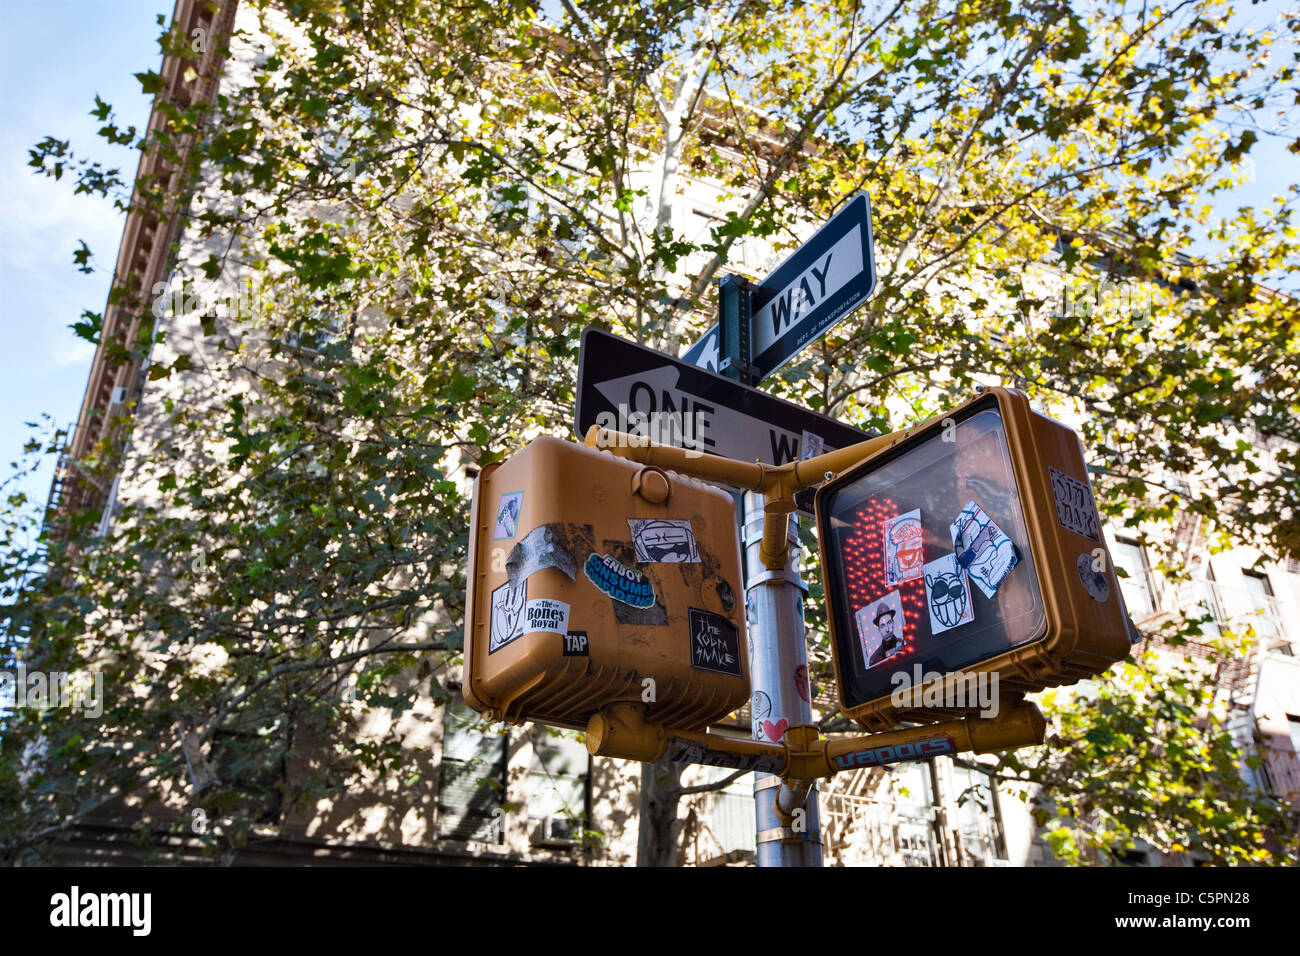 A heavily vandalized crosswalk signal with graffiti and stickers in the SoHo neighborhood of New York city - Stock Image